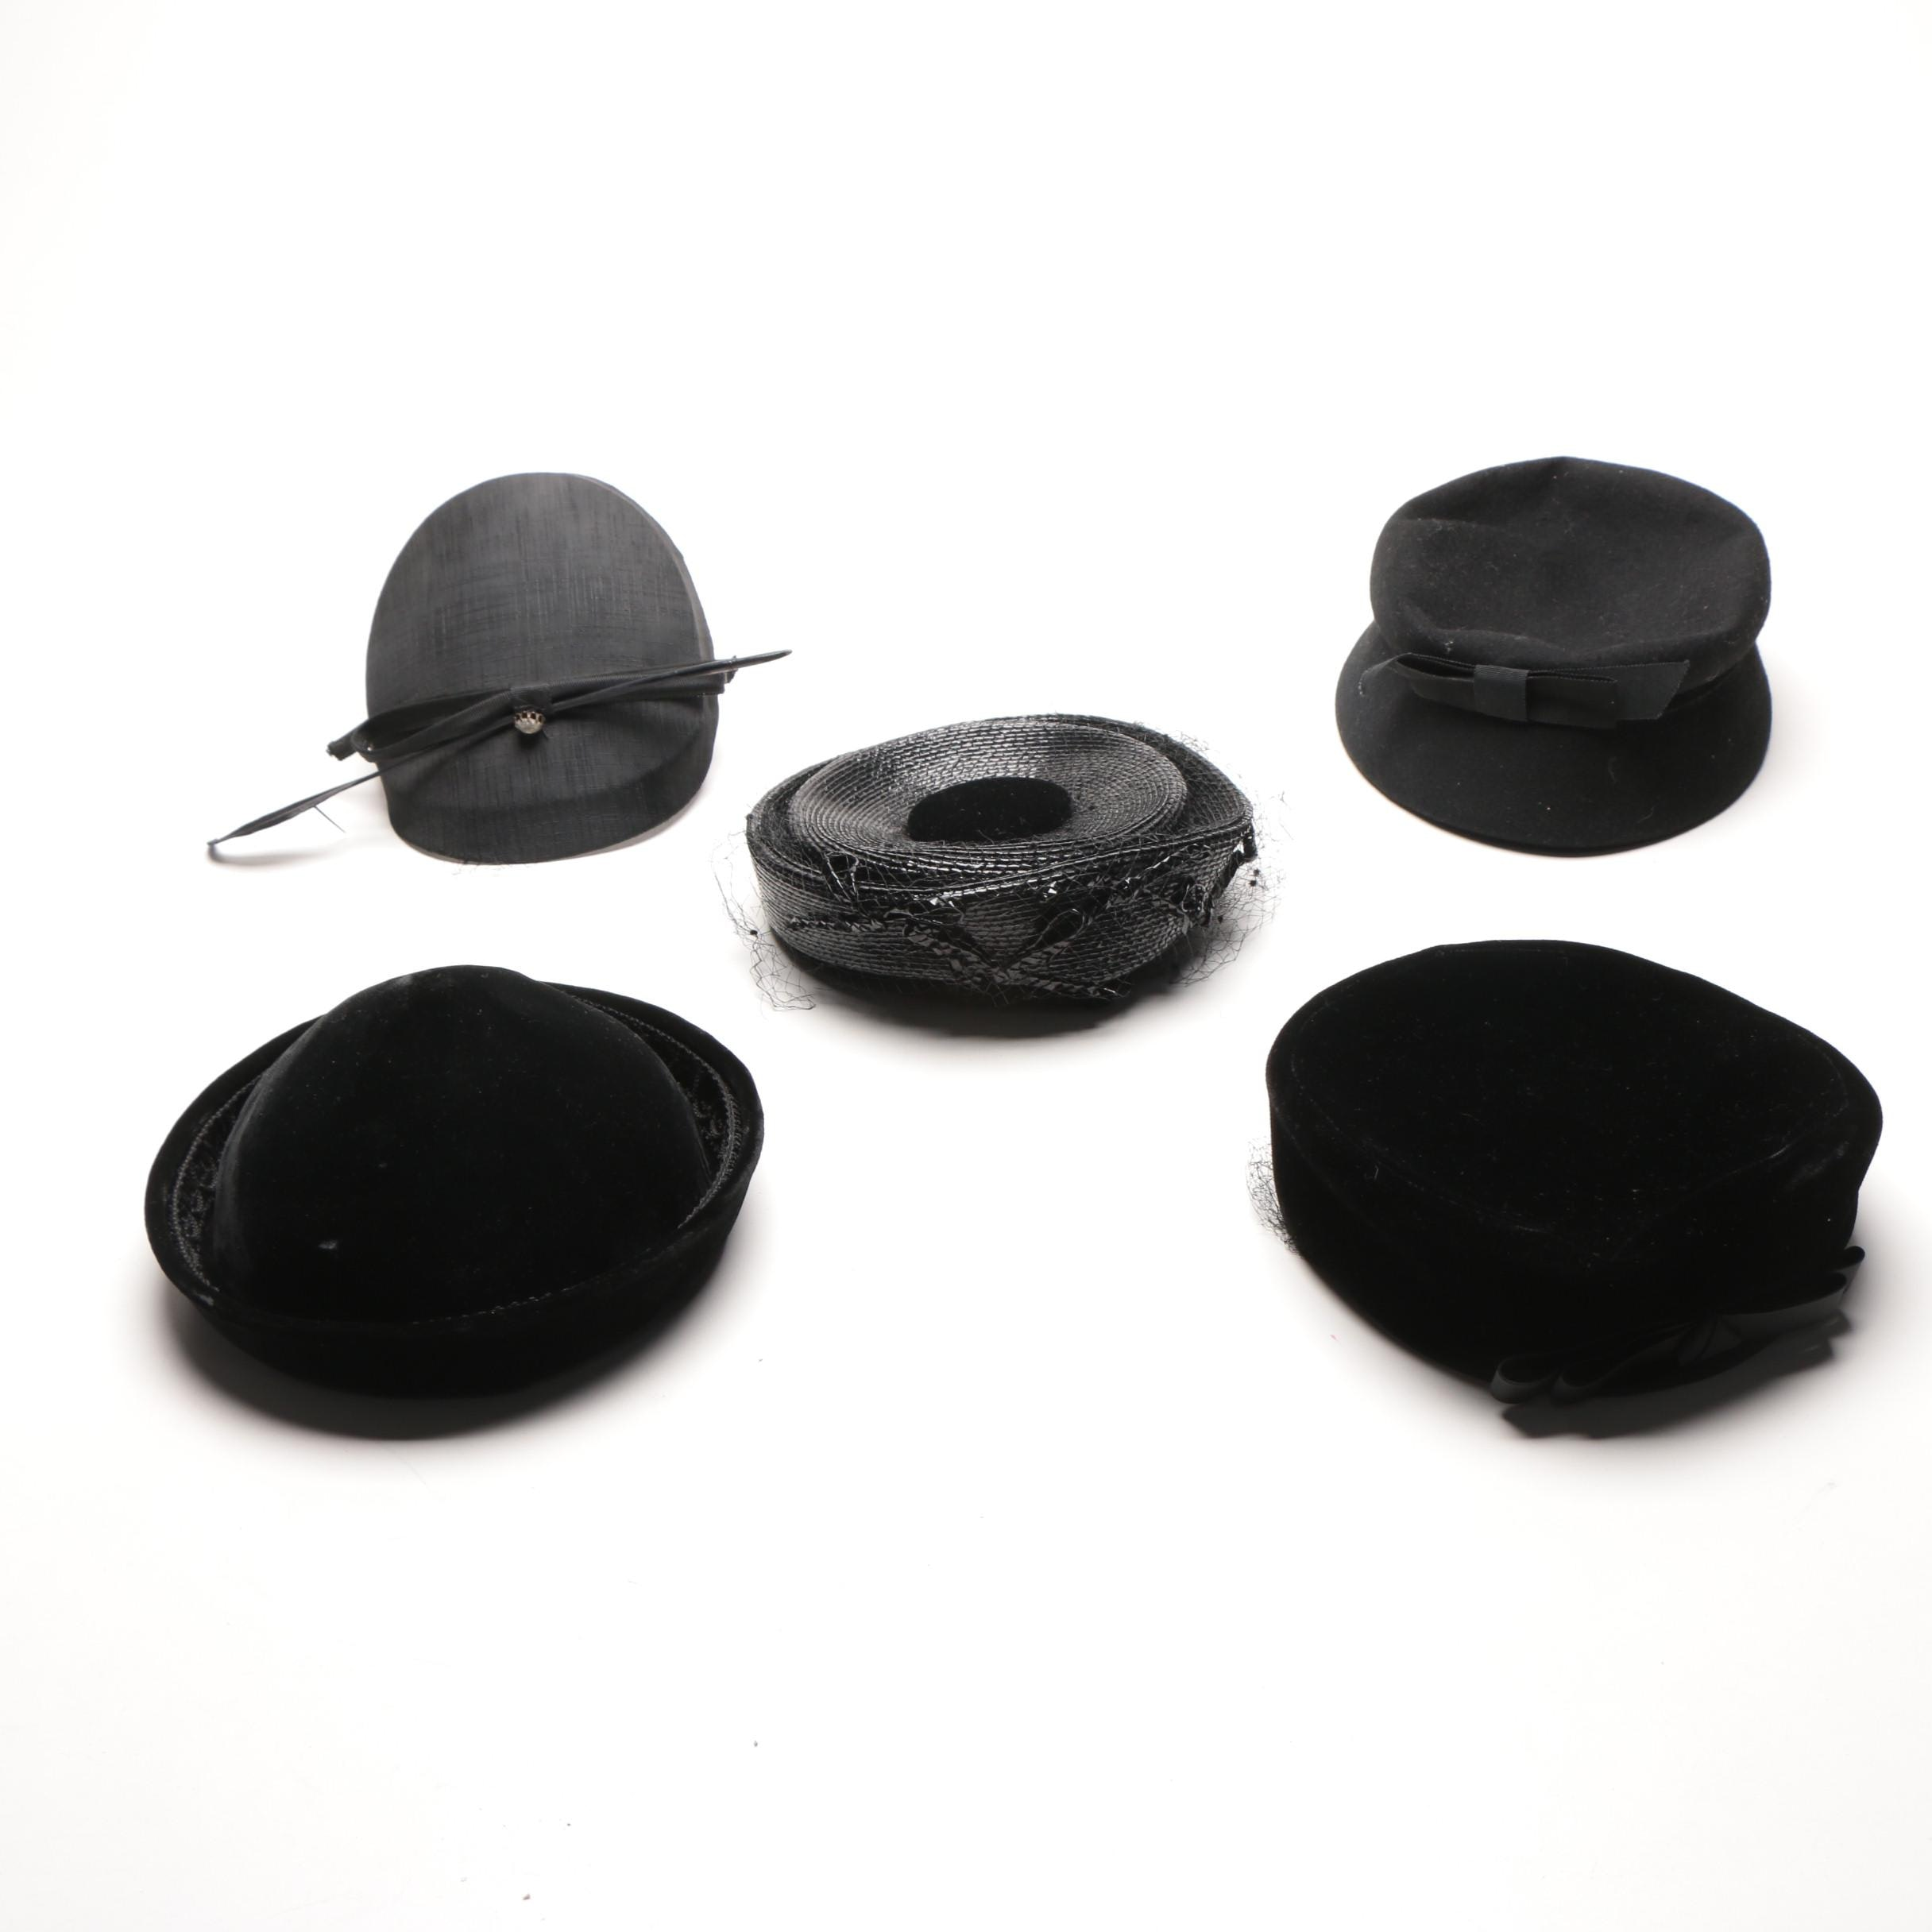 Collection of Vintage Black Hats